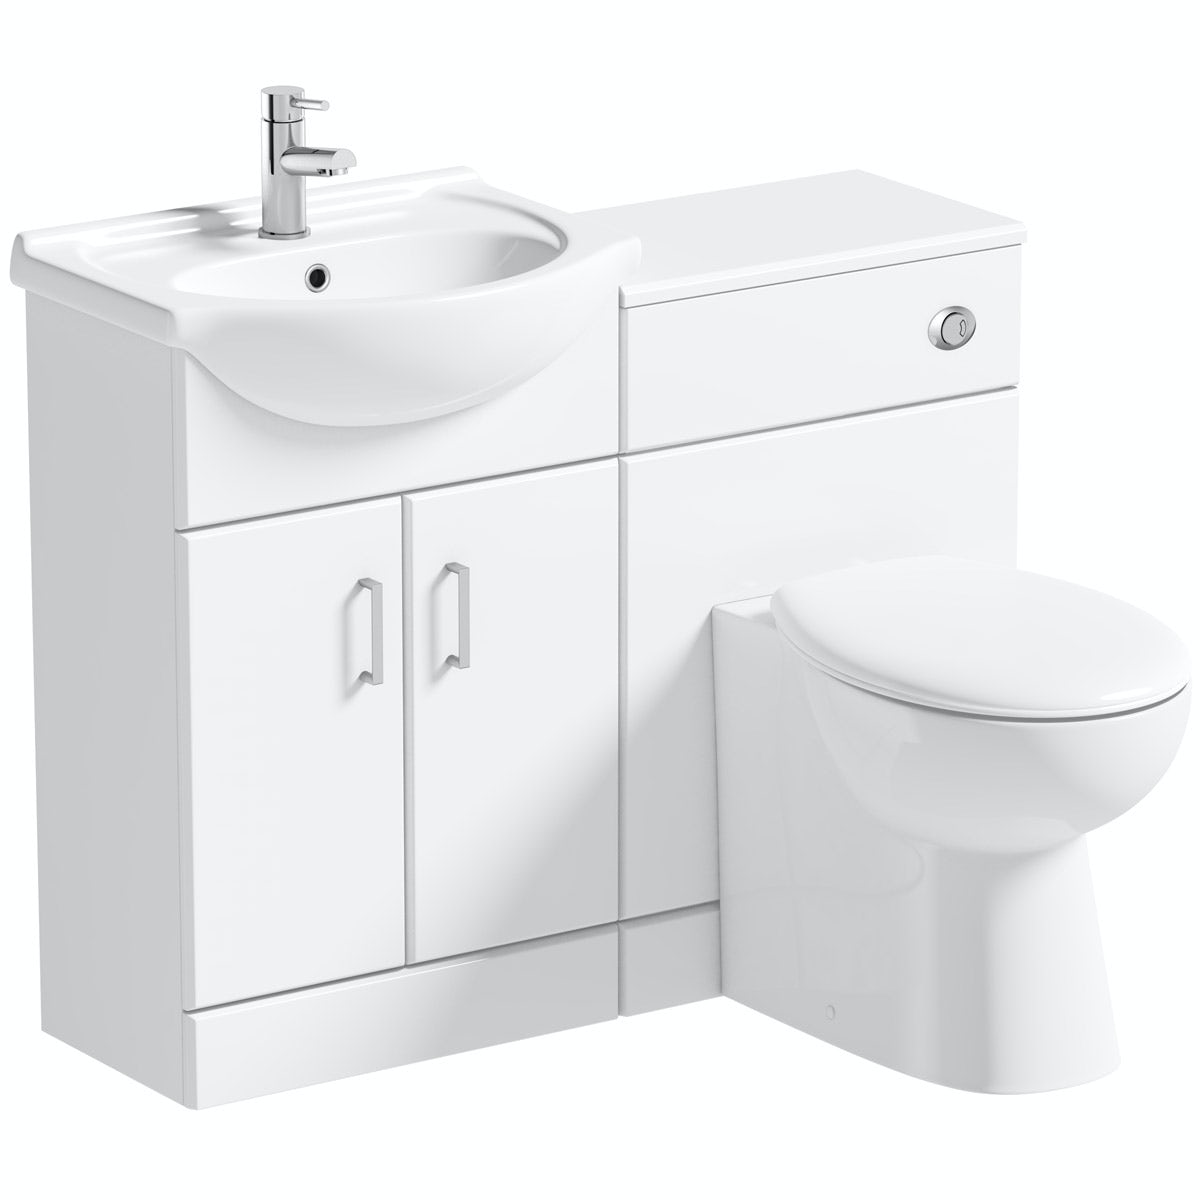 Charming Orchard Eden White 1040 Combination With Clarity Back To Wall Toilet